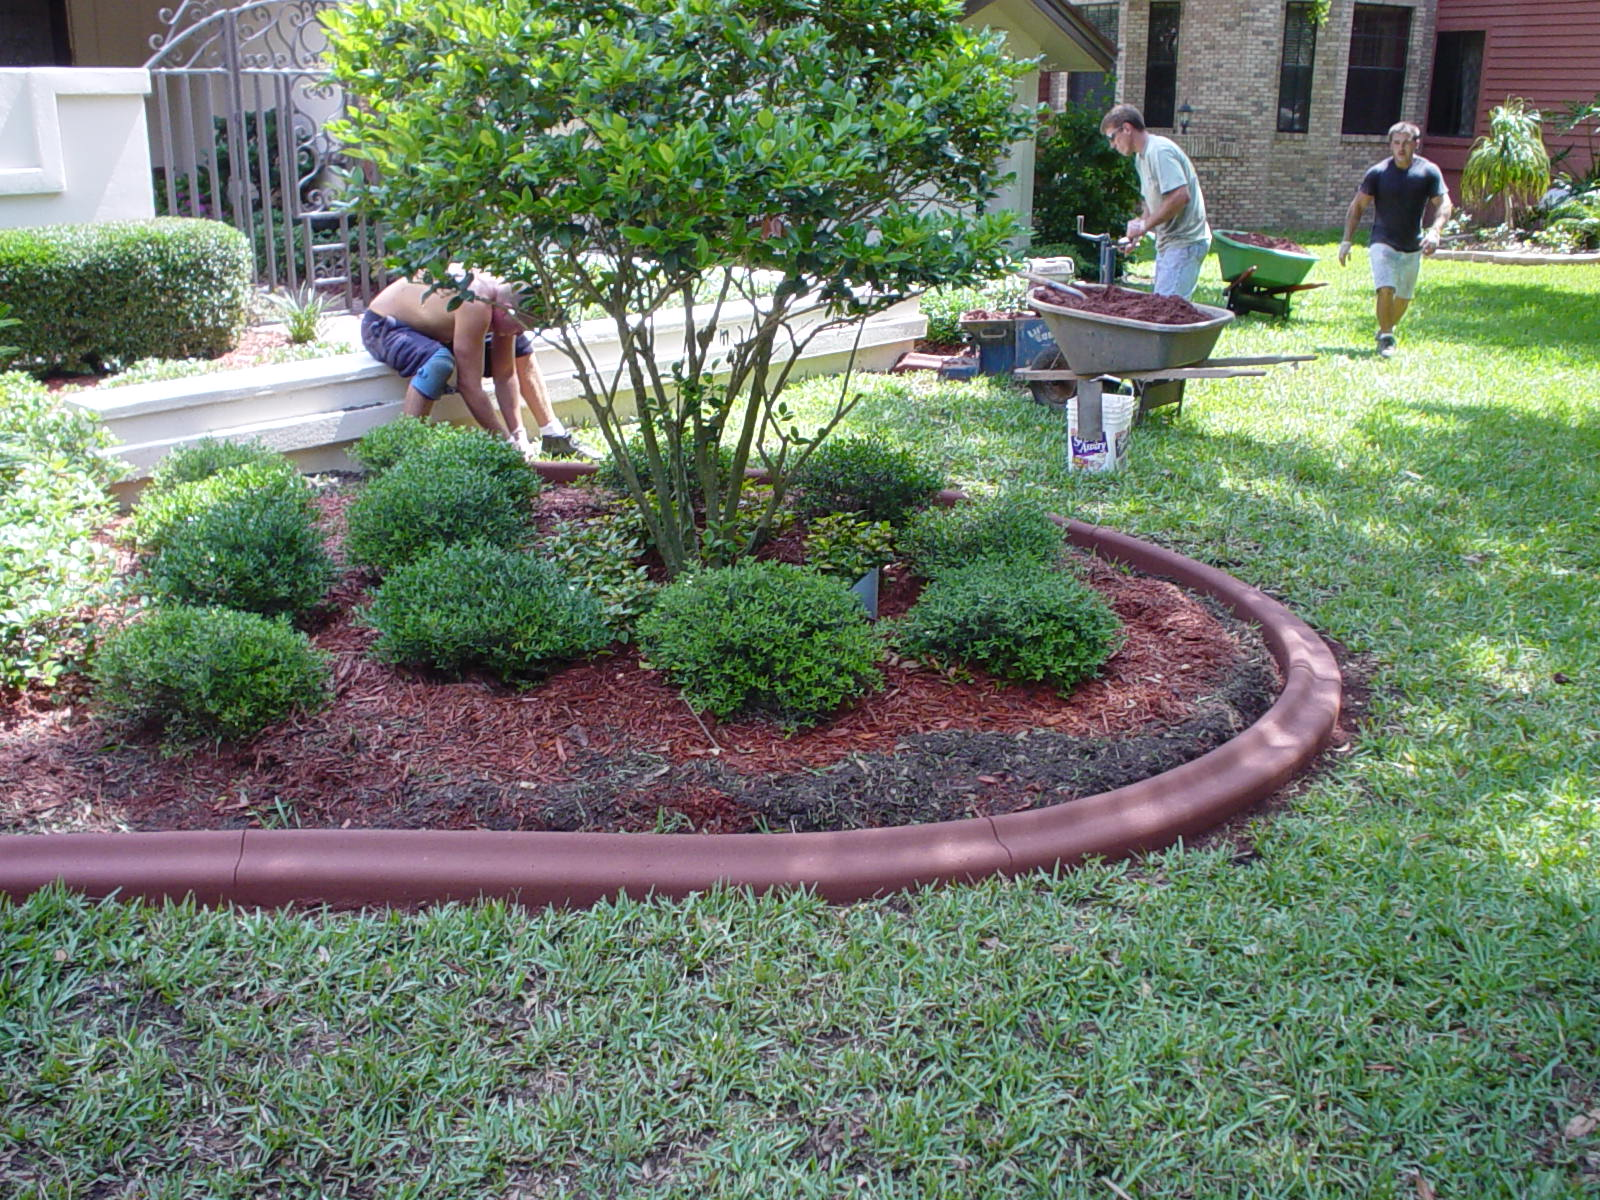 Professionals from Curb Appeal Curbing hard at work